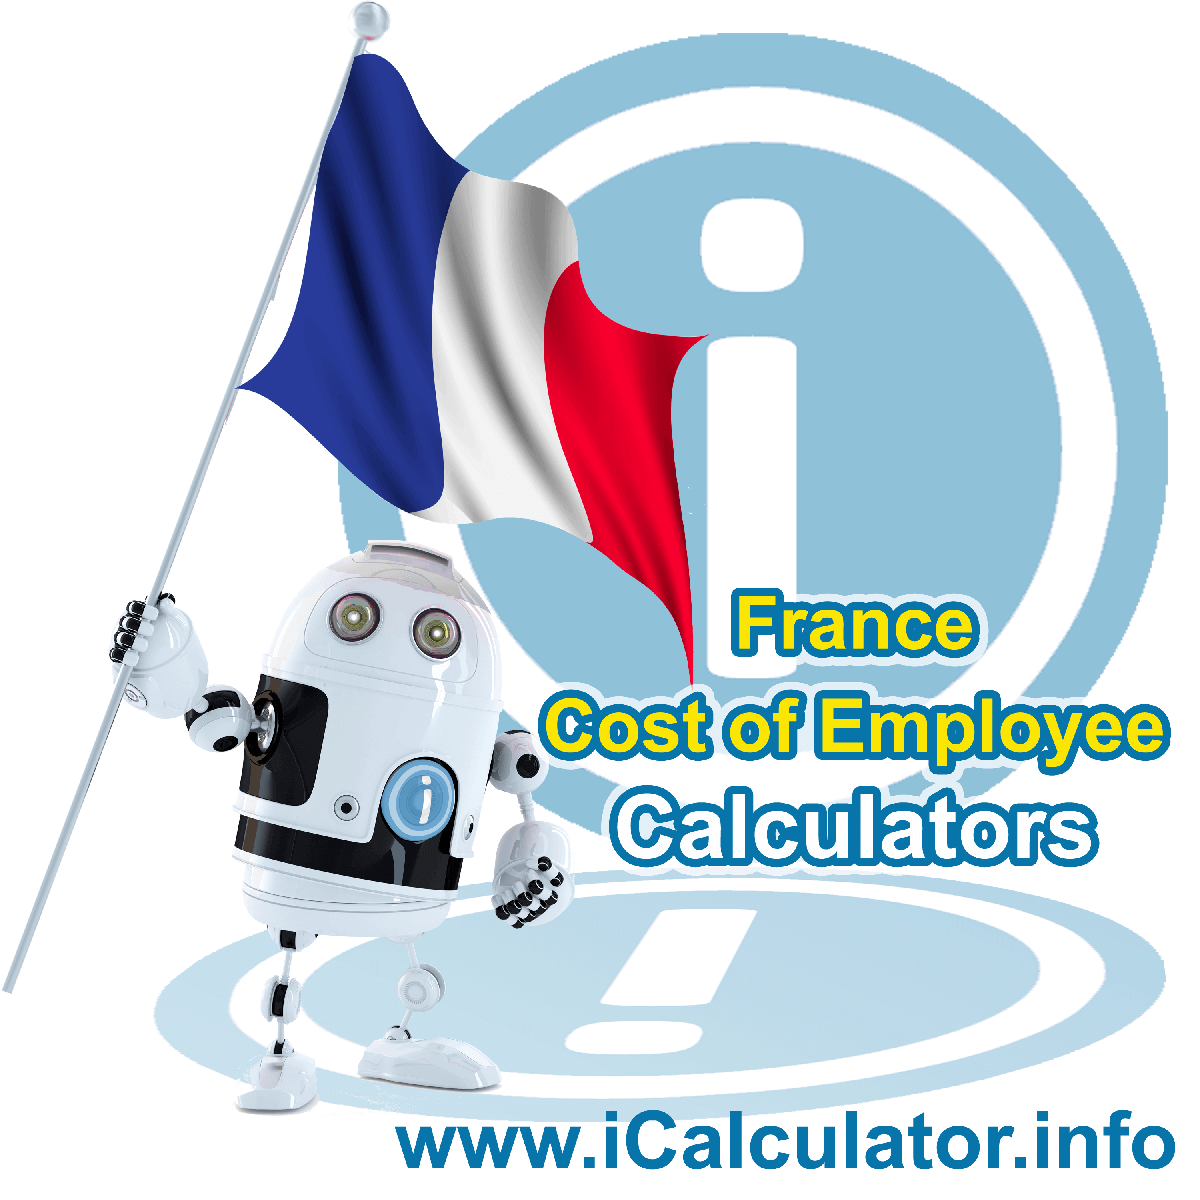 True Cost of an Employee in France Calculator. This image shows a new employer in France looking hiring a new employee, they calculate the cost of hiring an employee in France using the True Cost of an Employee in France calculator to understand their employment cost in France in 2021